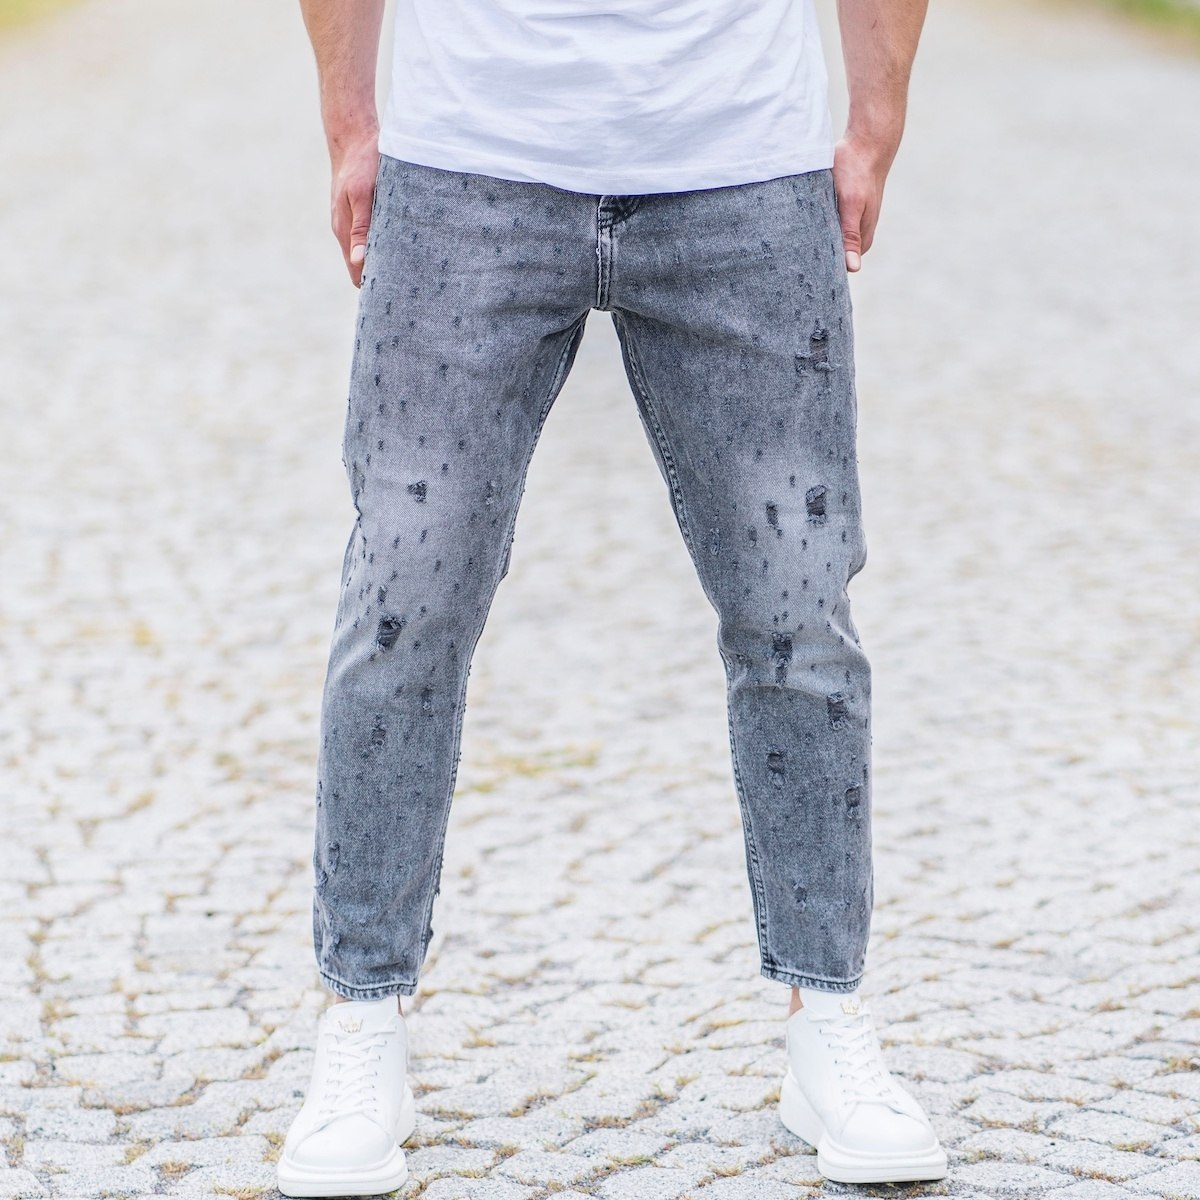 Men's Loose Fit Distorted Jeans In Gray